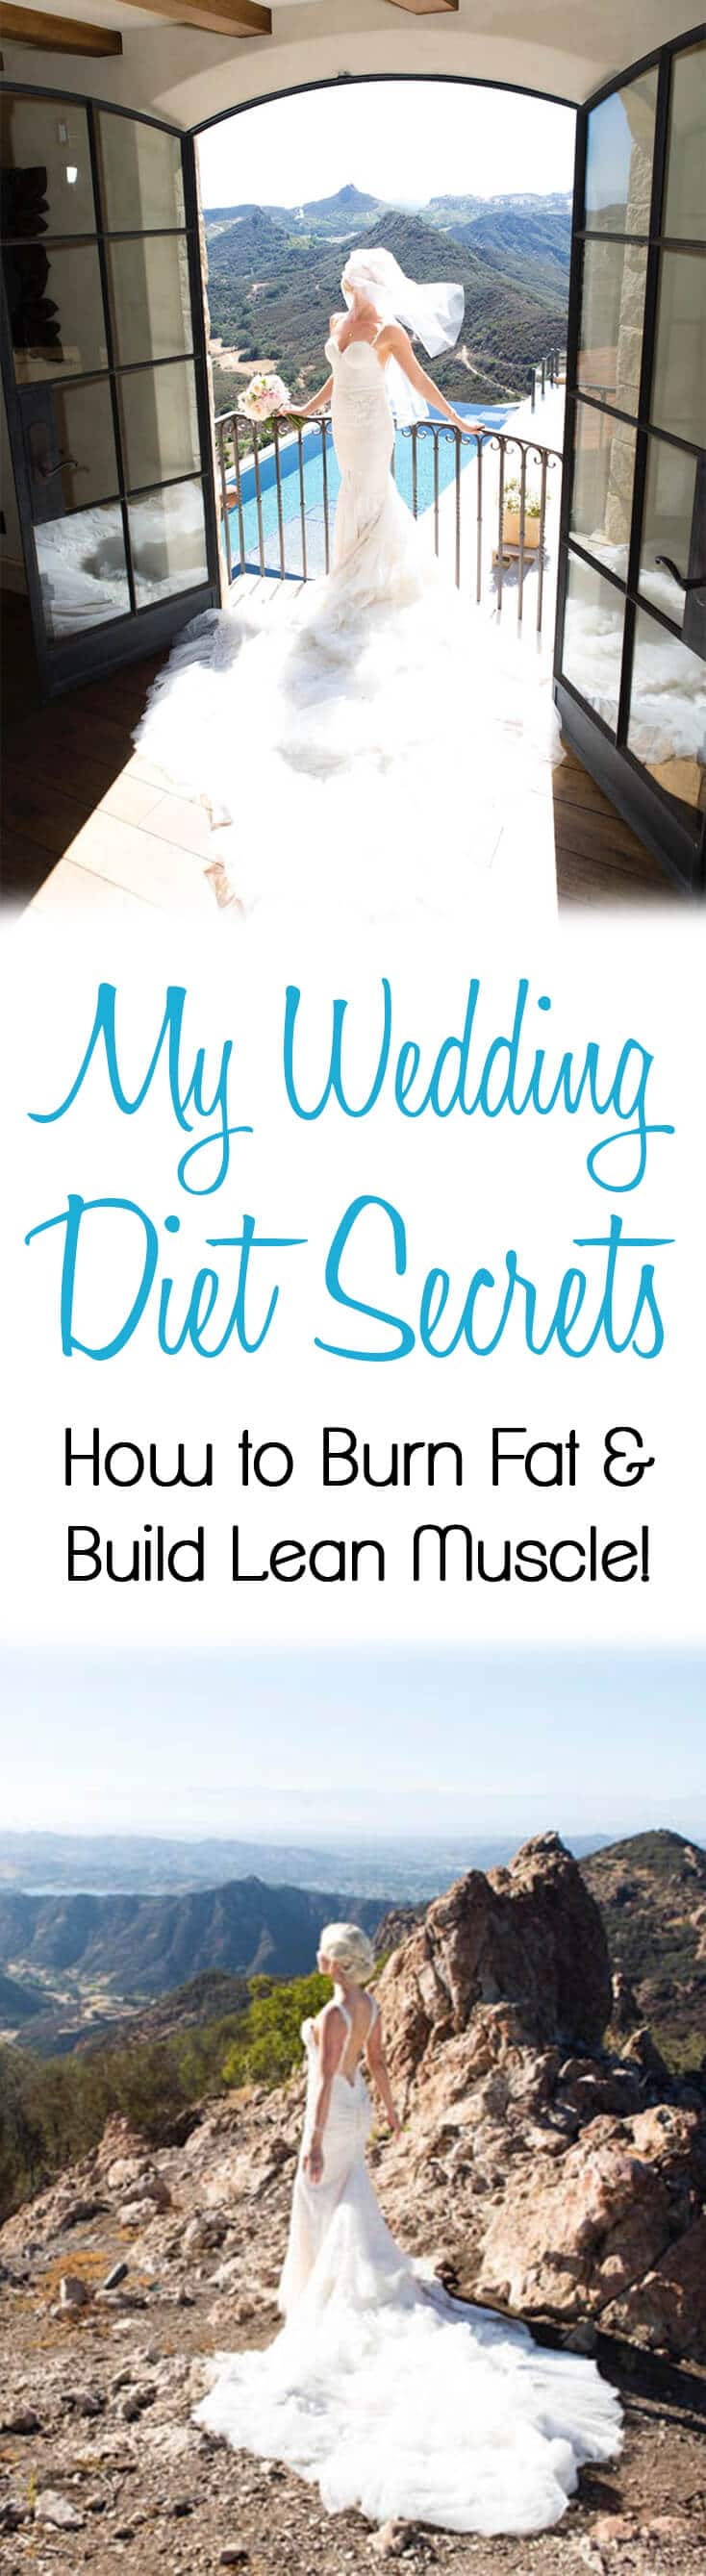 Are you eating enough to burn fat and build lean muscle? If you're dieting, you may be sabotaging your weight loss goals. I share the secrets I learned from my wedding diet in this tell all blog post.